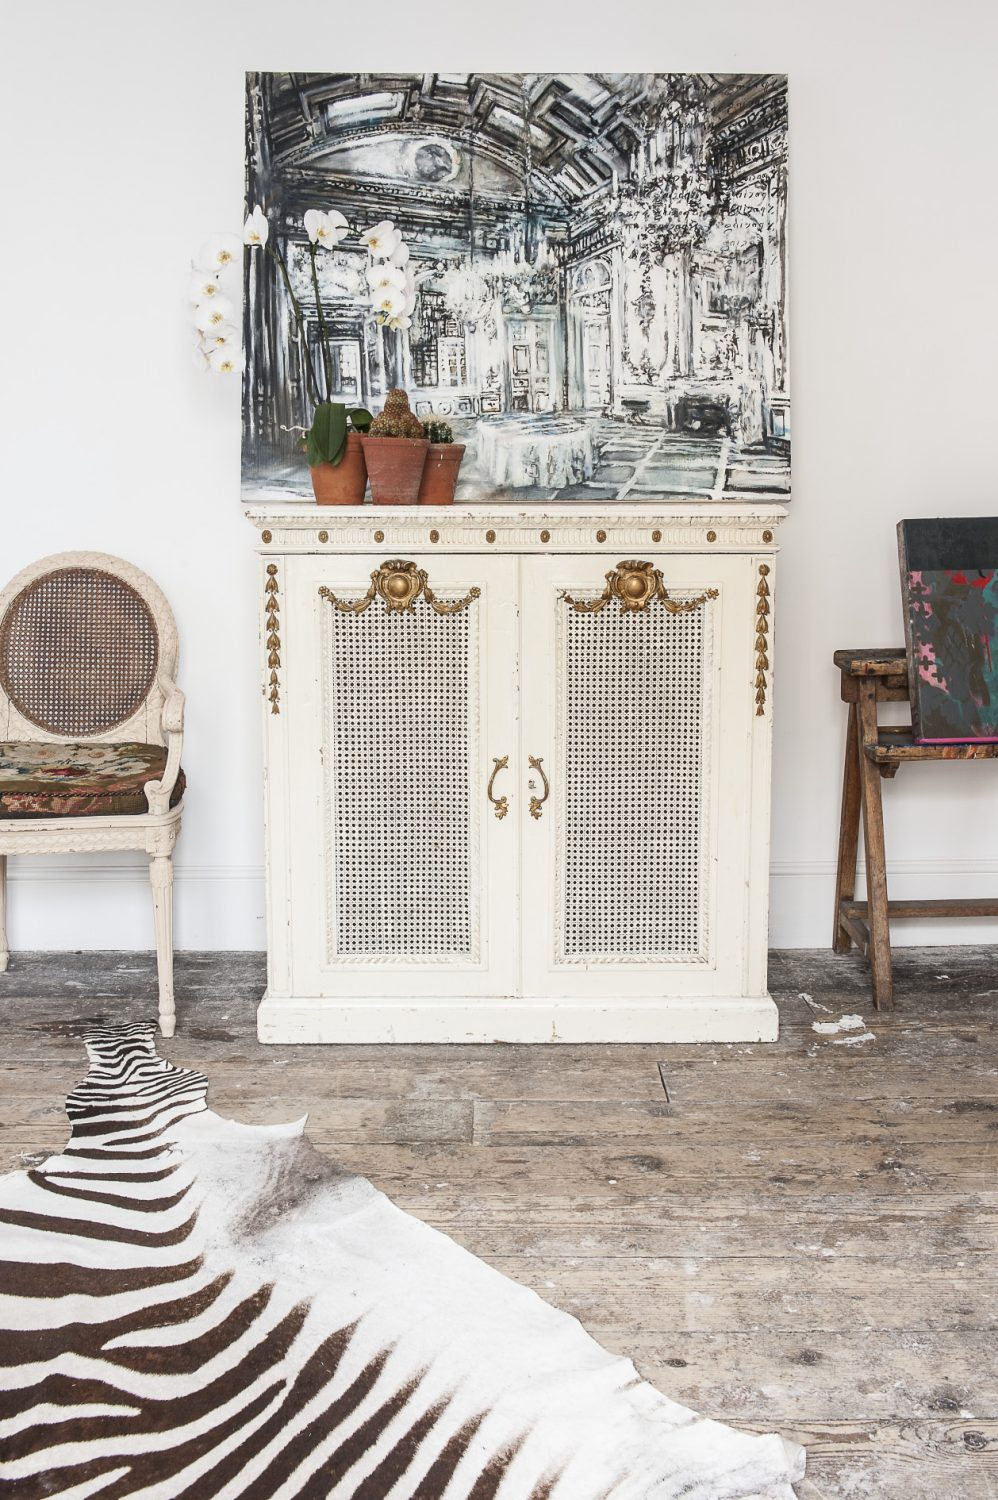 The intricate wrought-iron bed, gilded furniture, chandelier and zebra rug juxtaposed with the stripped floorboards and crisp white walls, work together to create a sense of faded luxury